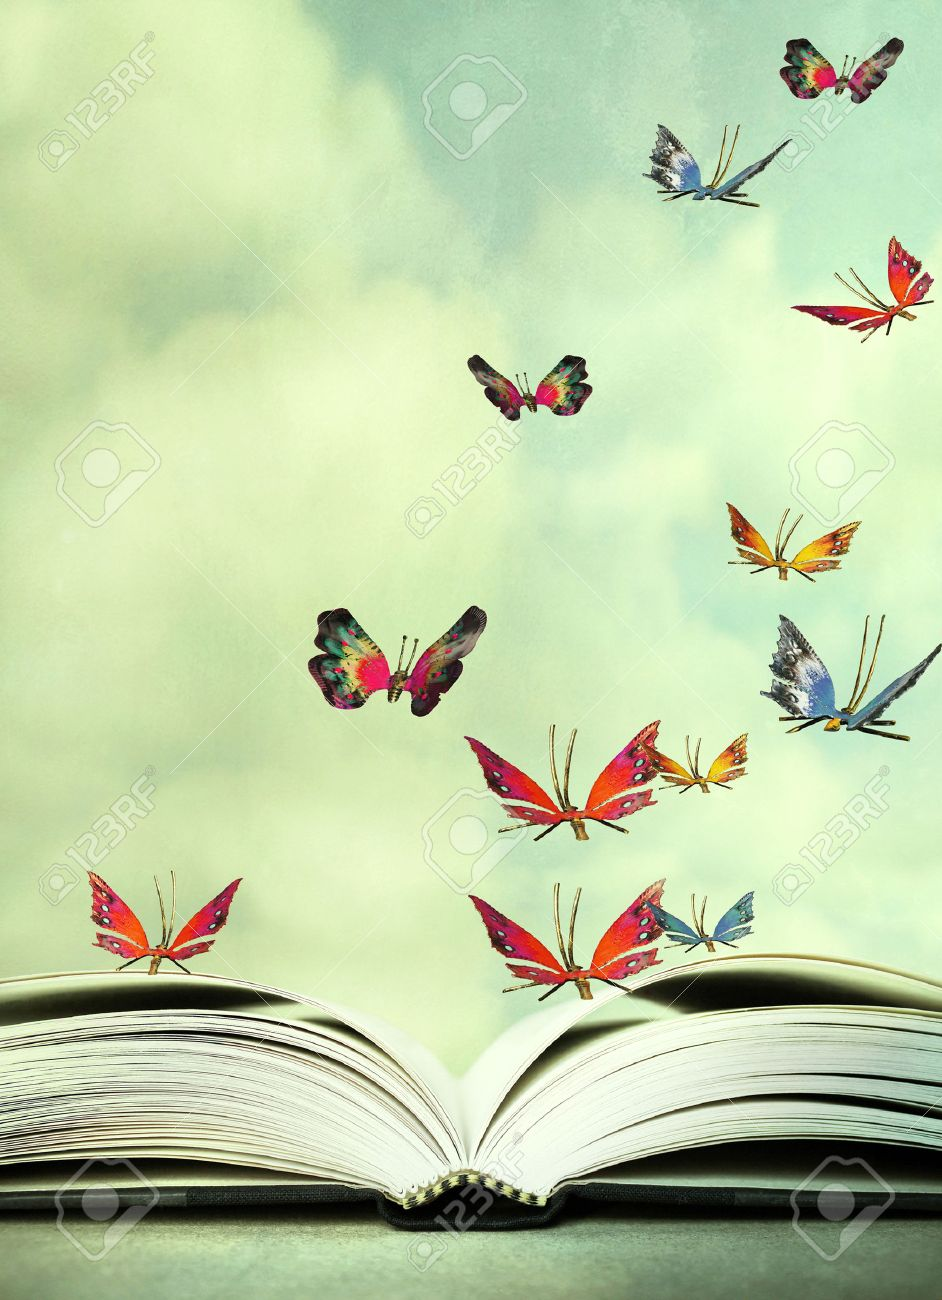 Artistic image of an open book and colorful butterflies that hover in the sky - 59790365